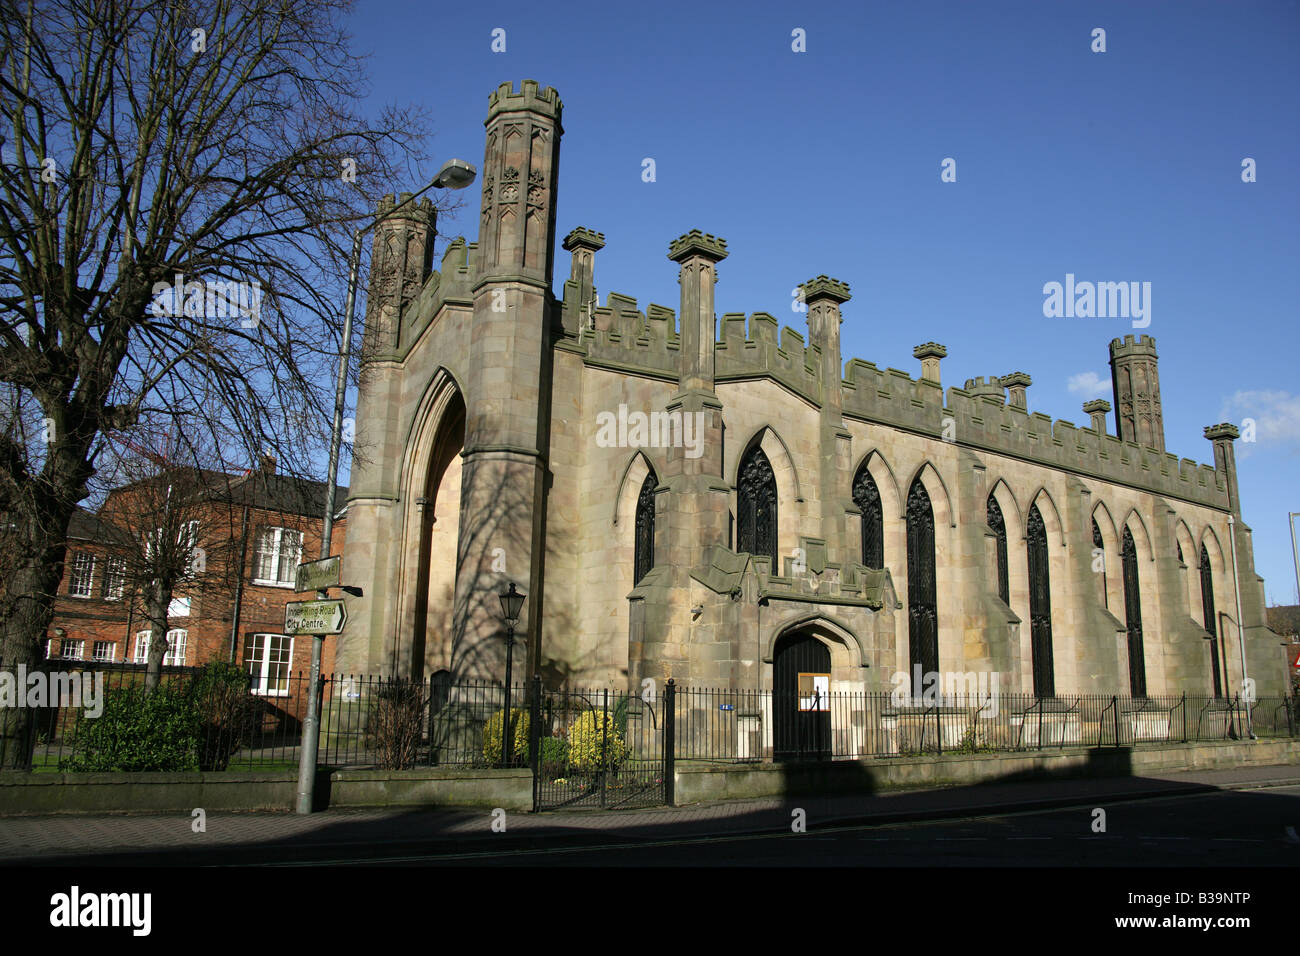 City Of Derby England The Sir Francis Goodwin Designed Gothic Revival Architecture St John Evangelist Church